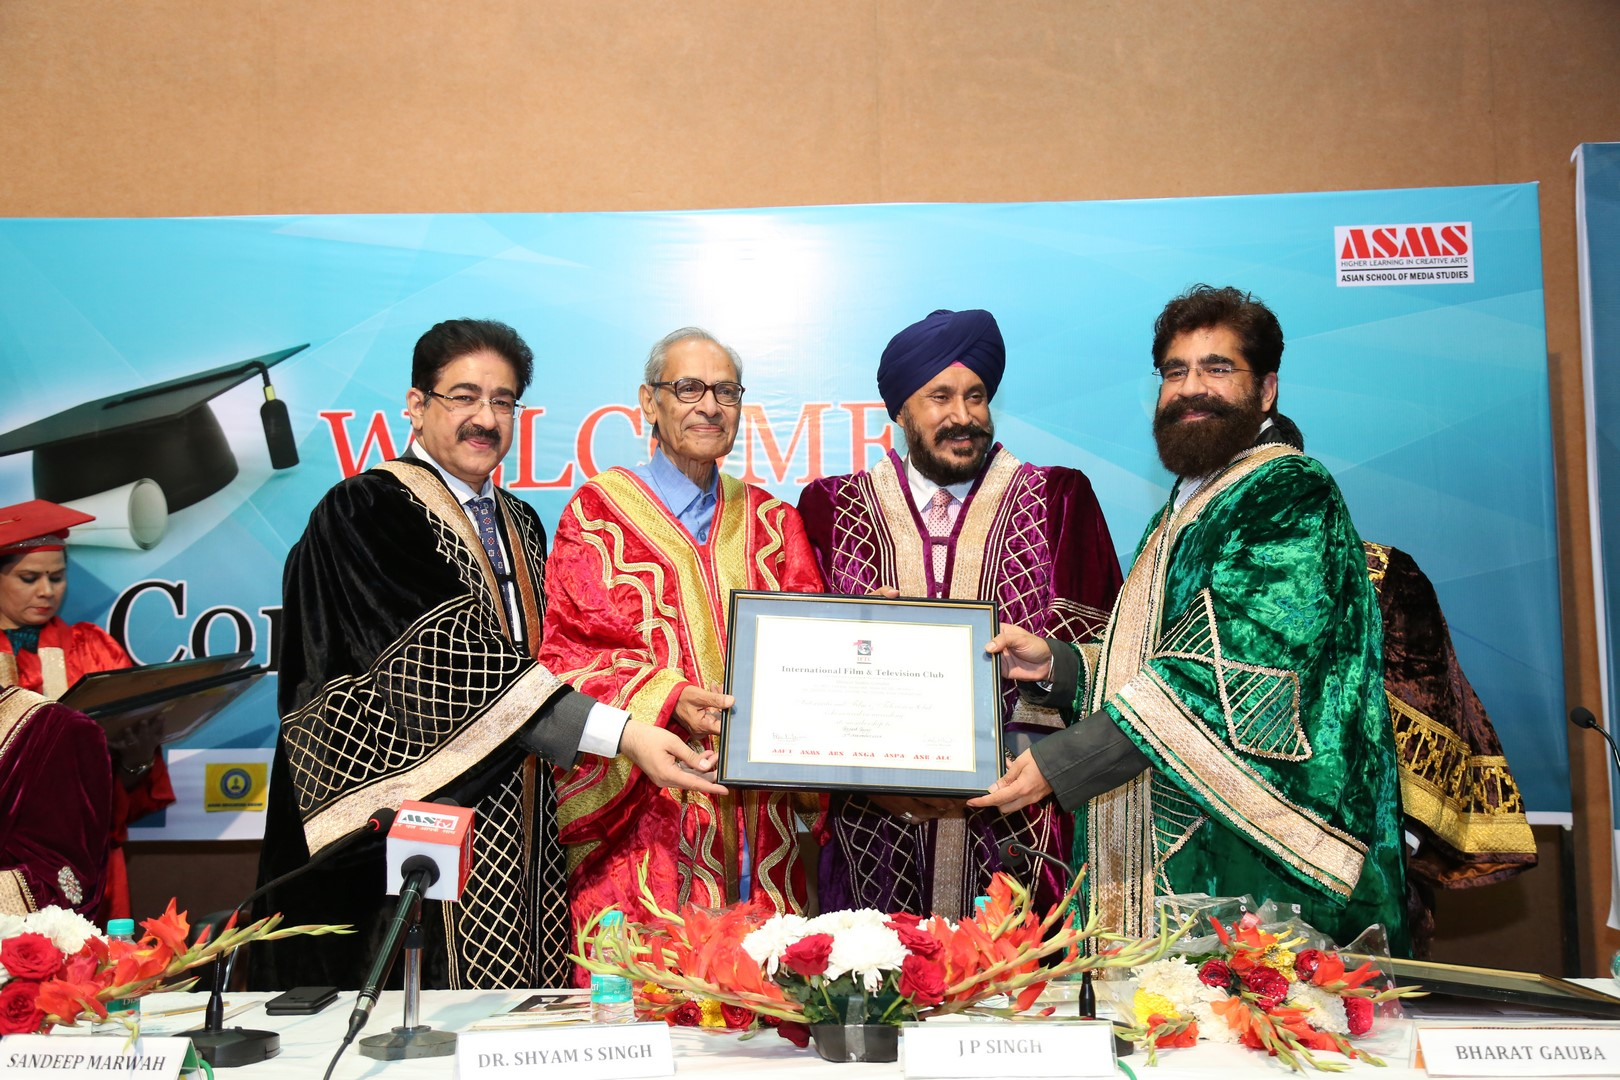 J P Singh Director ISD Council is distributing awards at Marwah Studio with Sandeep Marwah